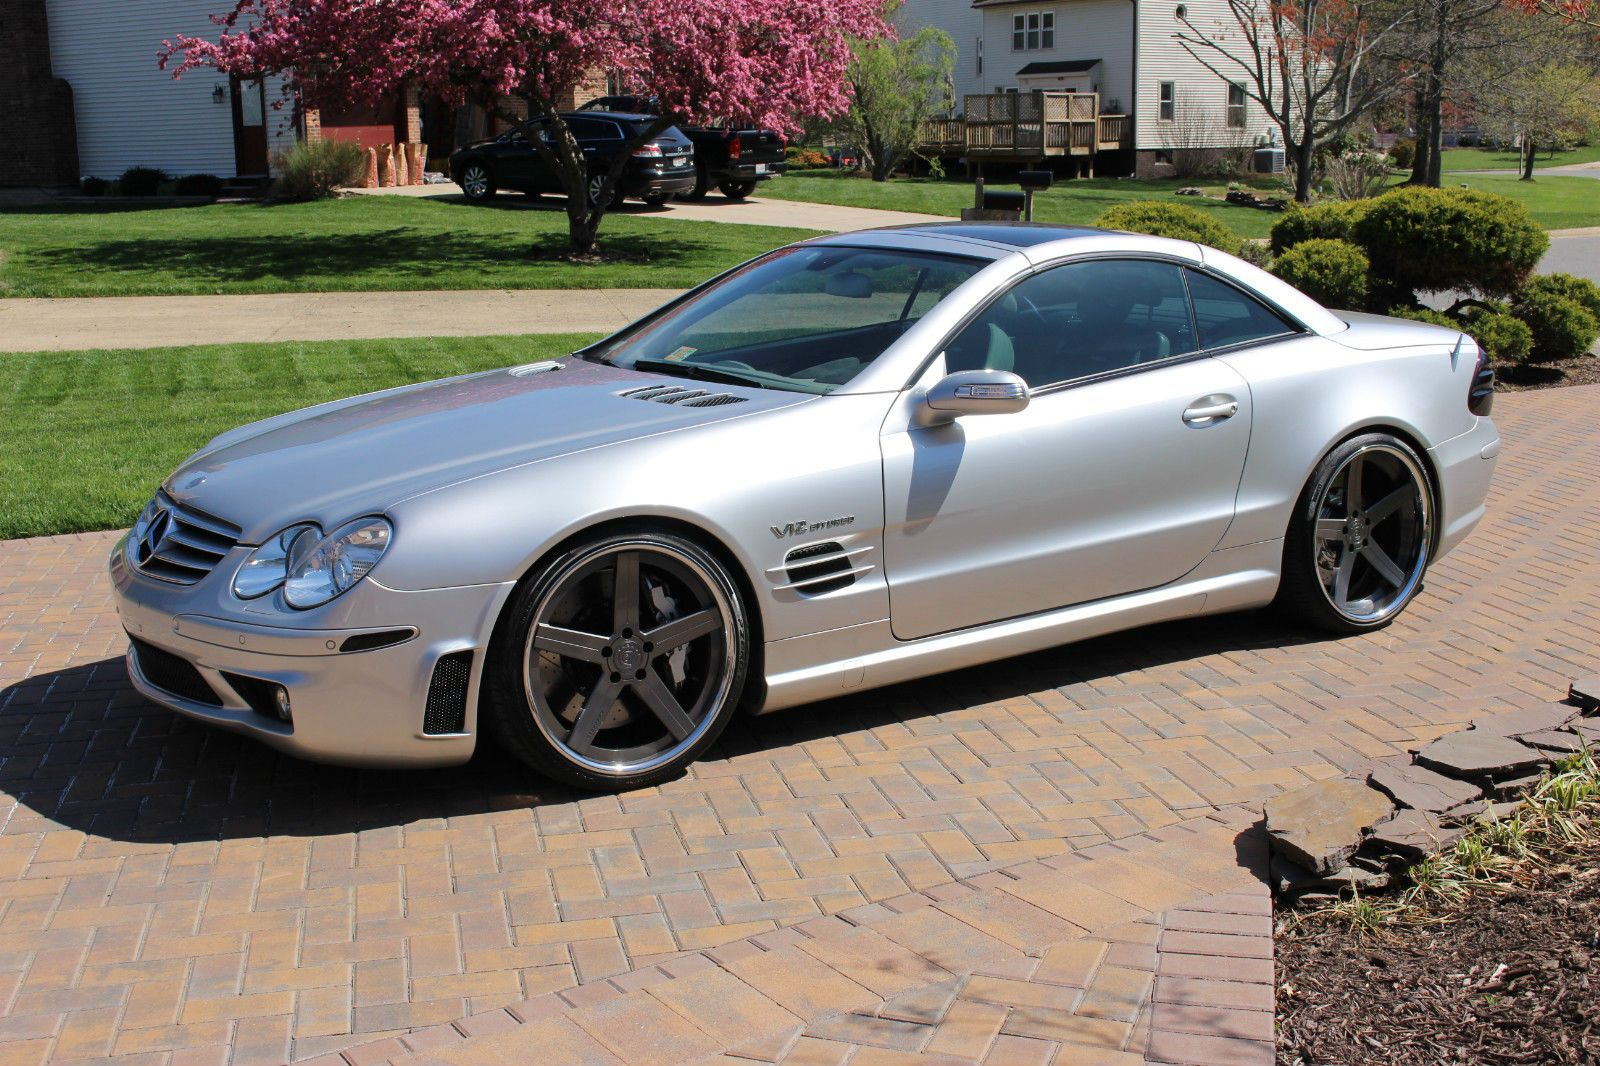 Mercedes benz 2005 cl500 2005 mercedes benz cl500 amg sport 4 real whip appeal pinterest mercedes benz mercedes benz cl and coupe